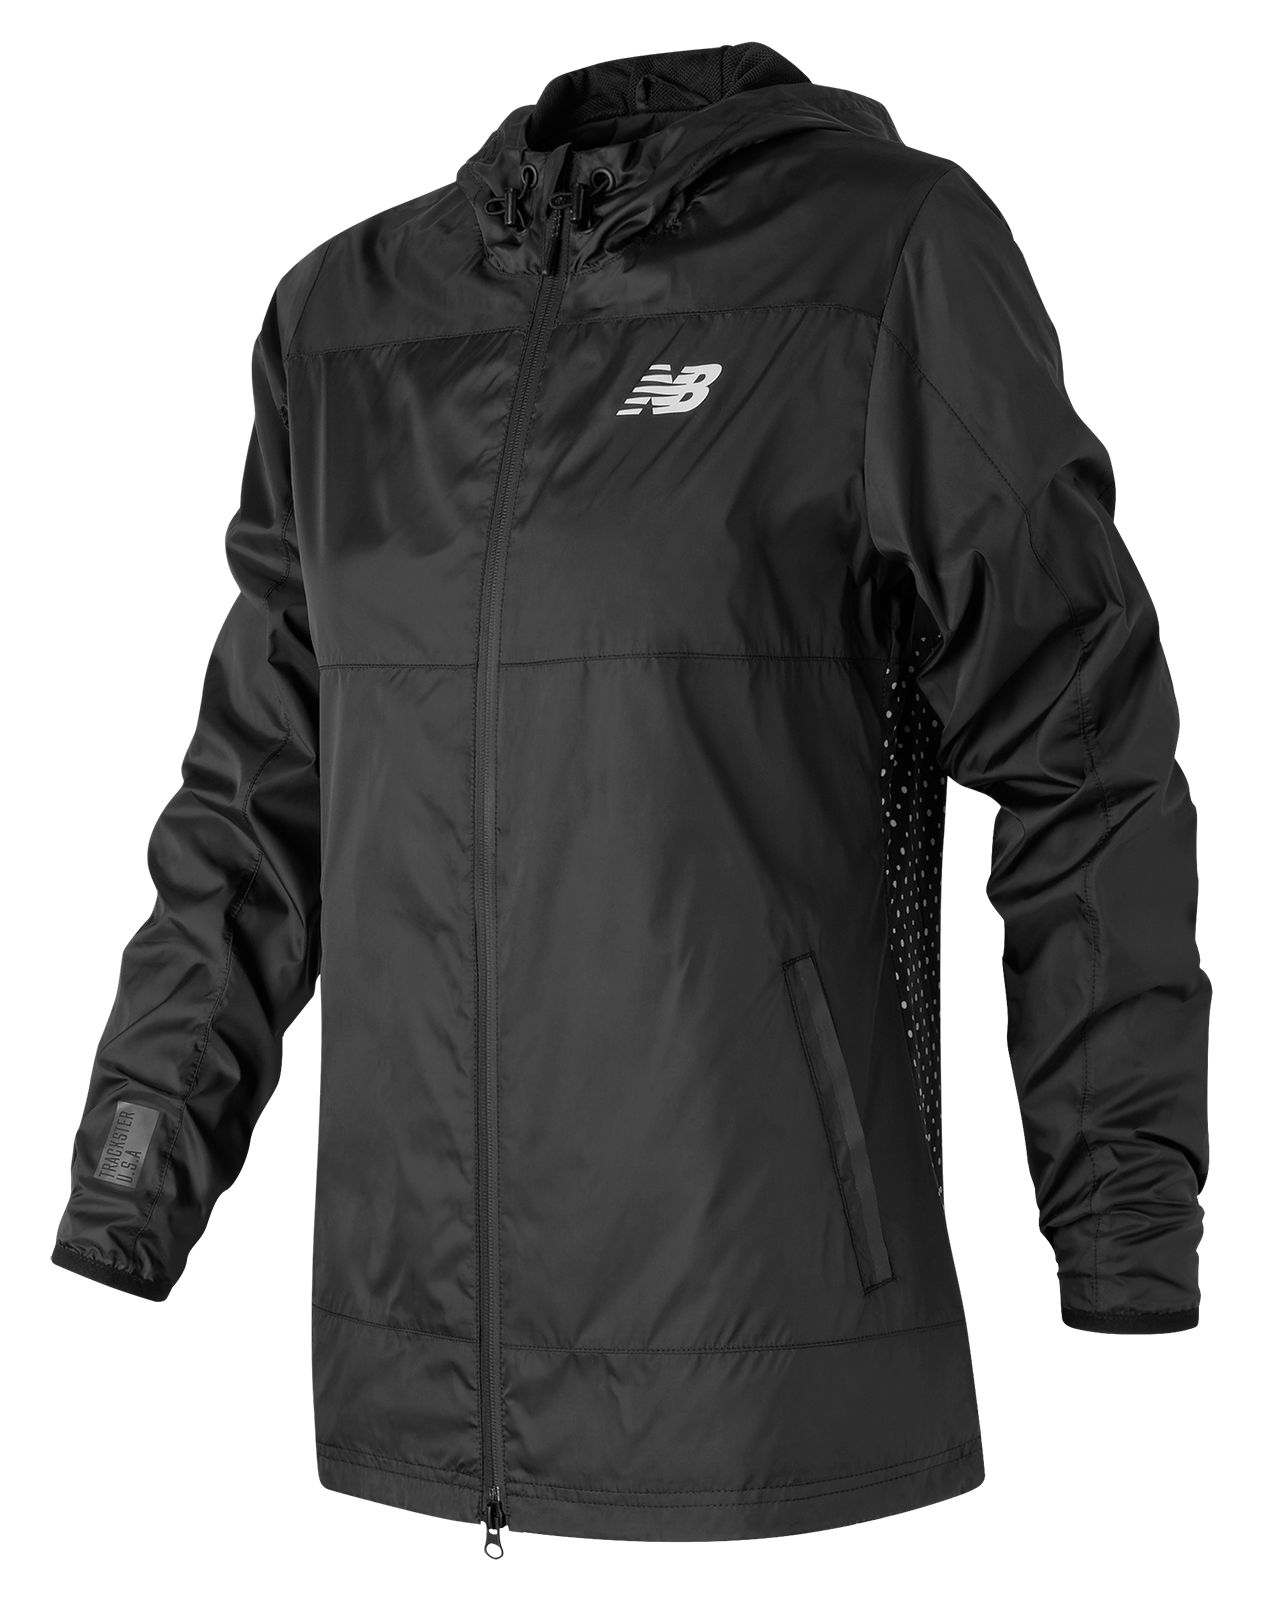 New Balance : Trackster Woven Jacket : Women's Casual : WJ71620BK